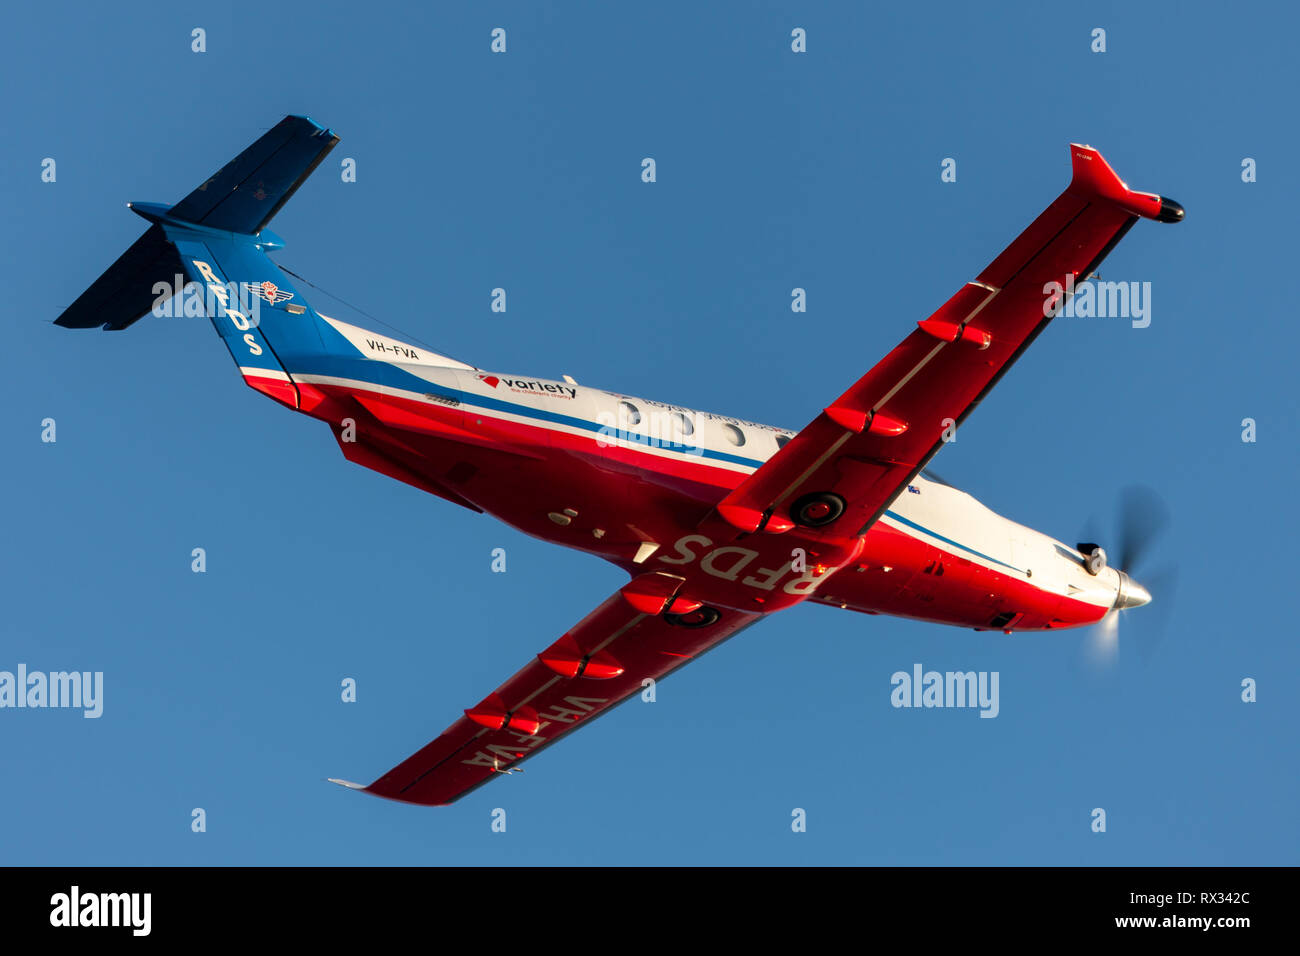 Royal Flying Doctors Service of Australia Pilatus PC-12 single engine air ambulance aircraft taking off from Ad - Stock Image